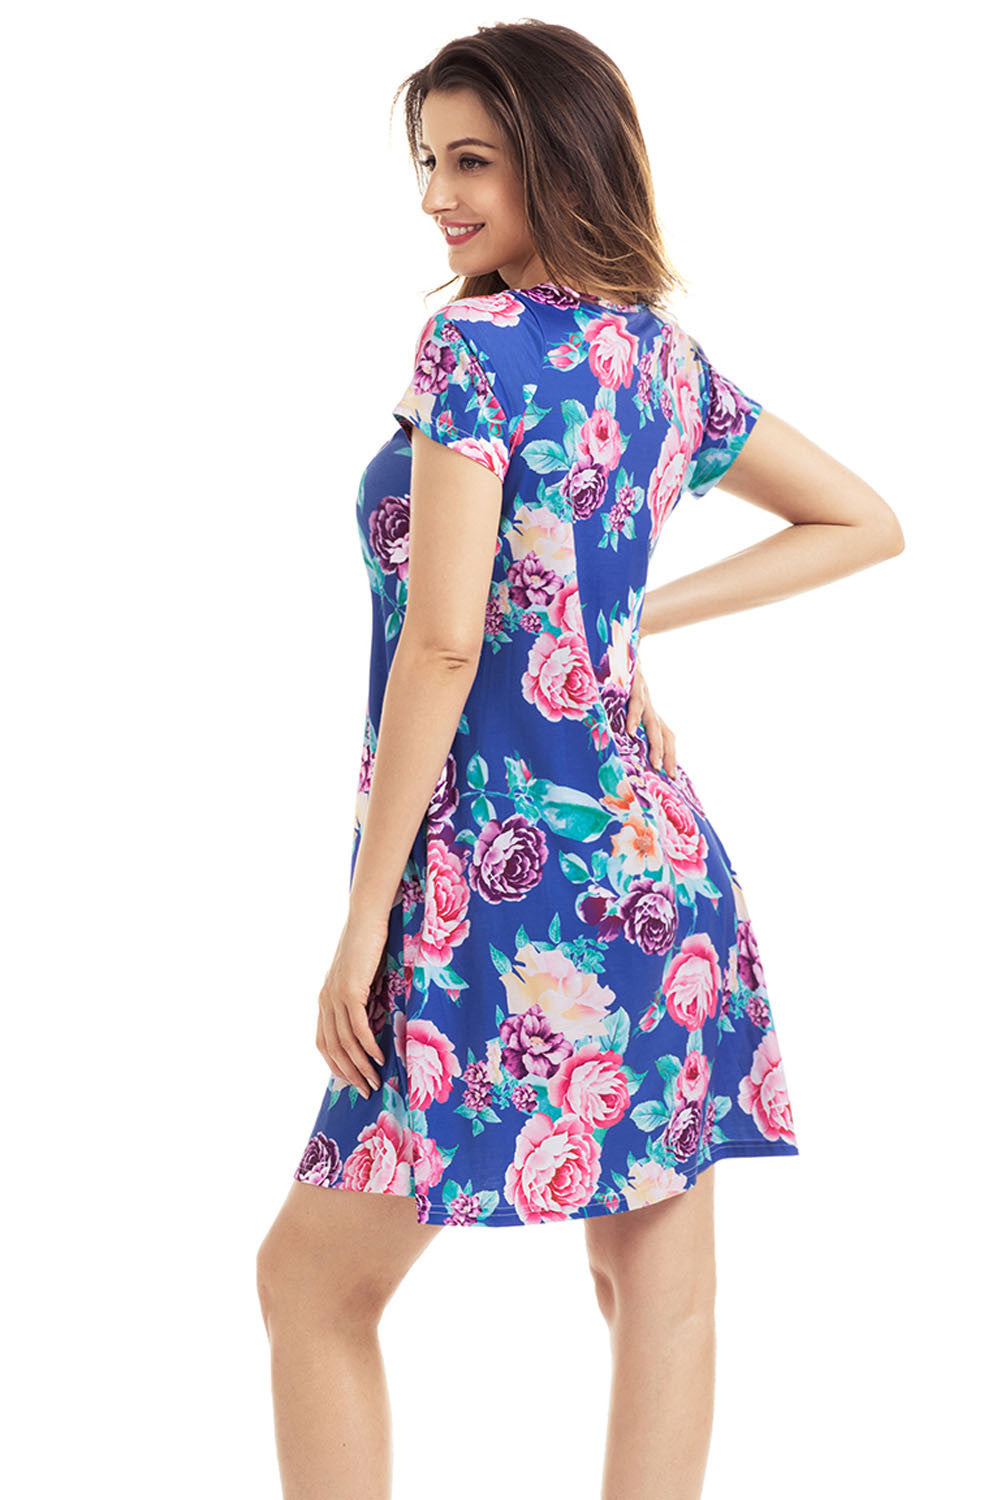 Her Pink Pocket Design Summer Floral Sleek Shirt Dress